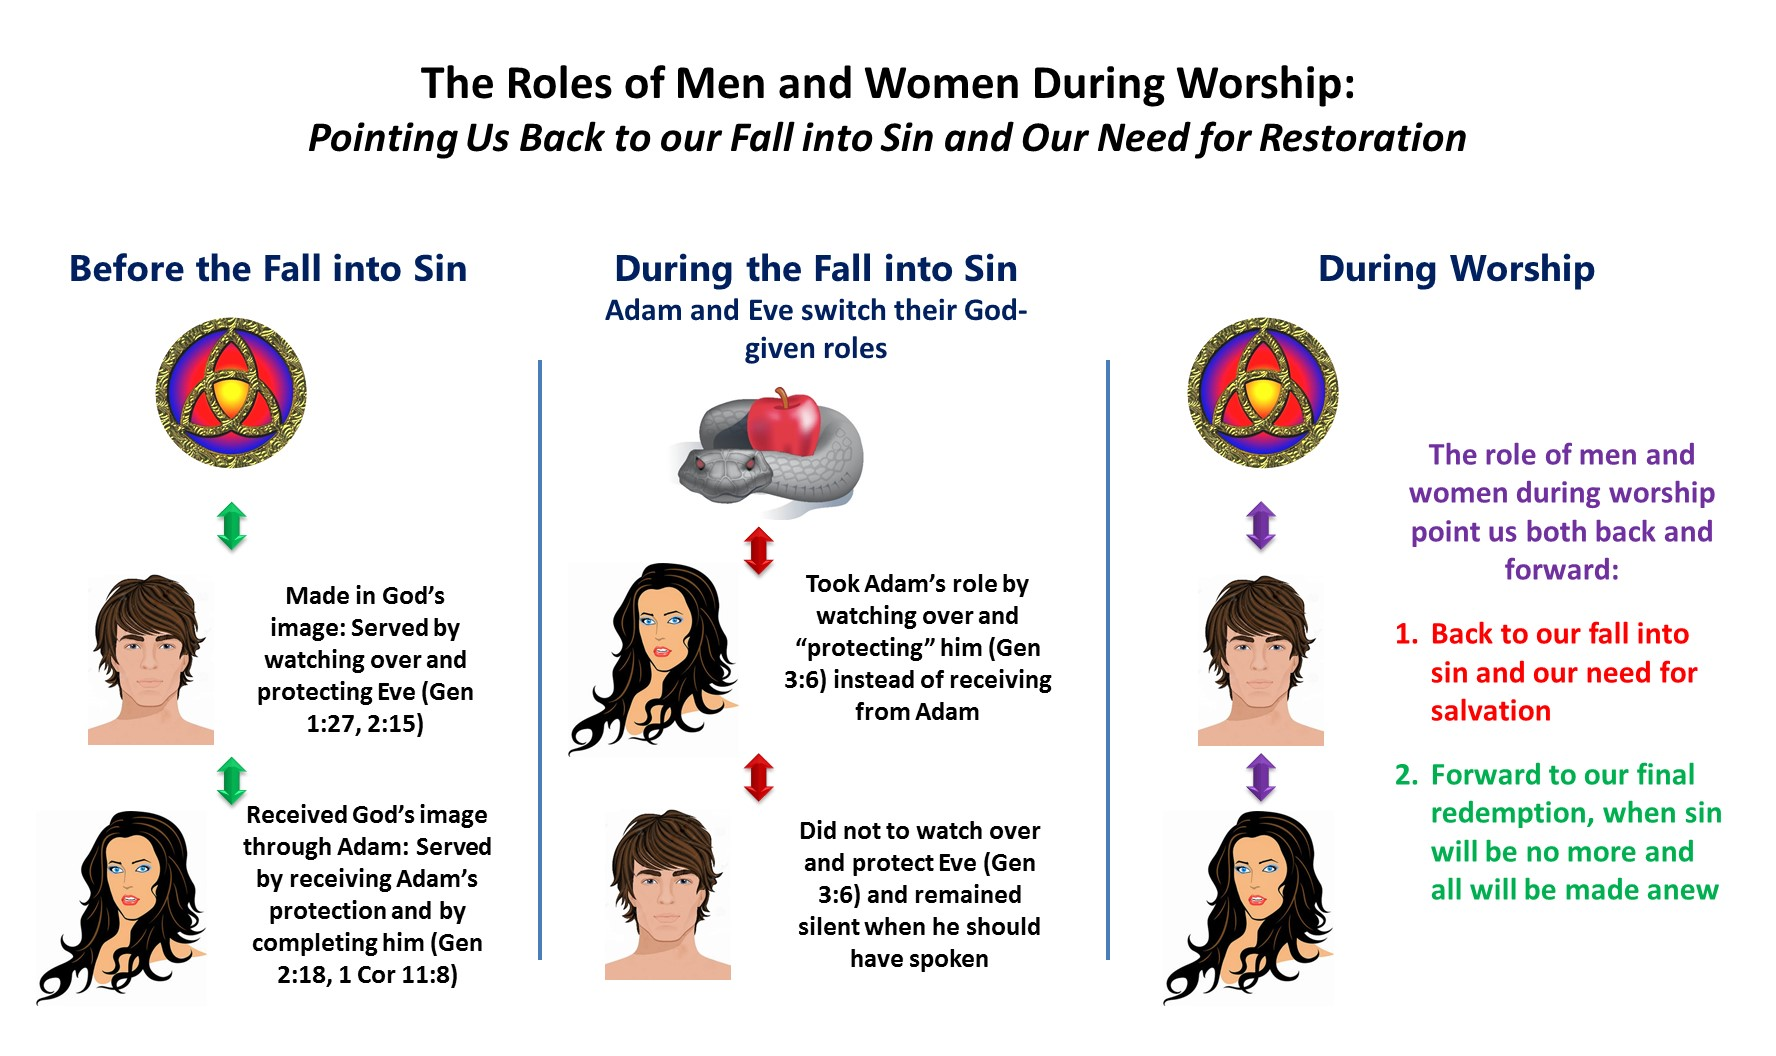 the role of men and women